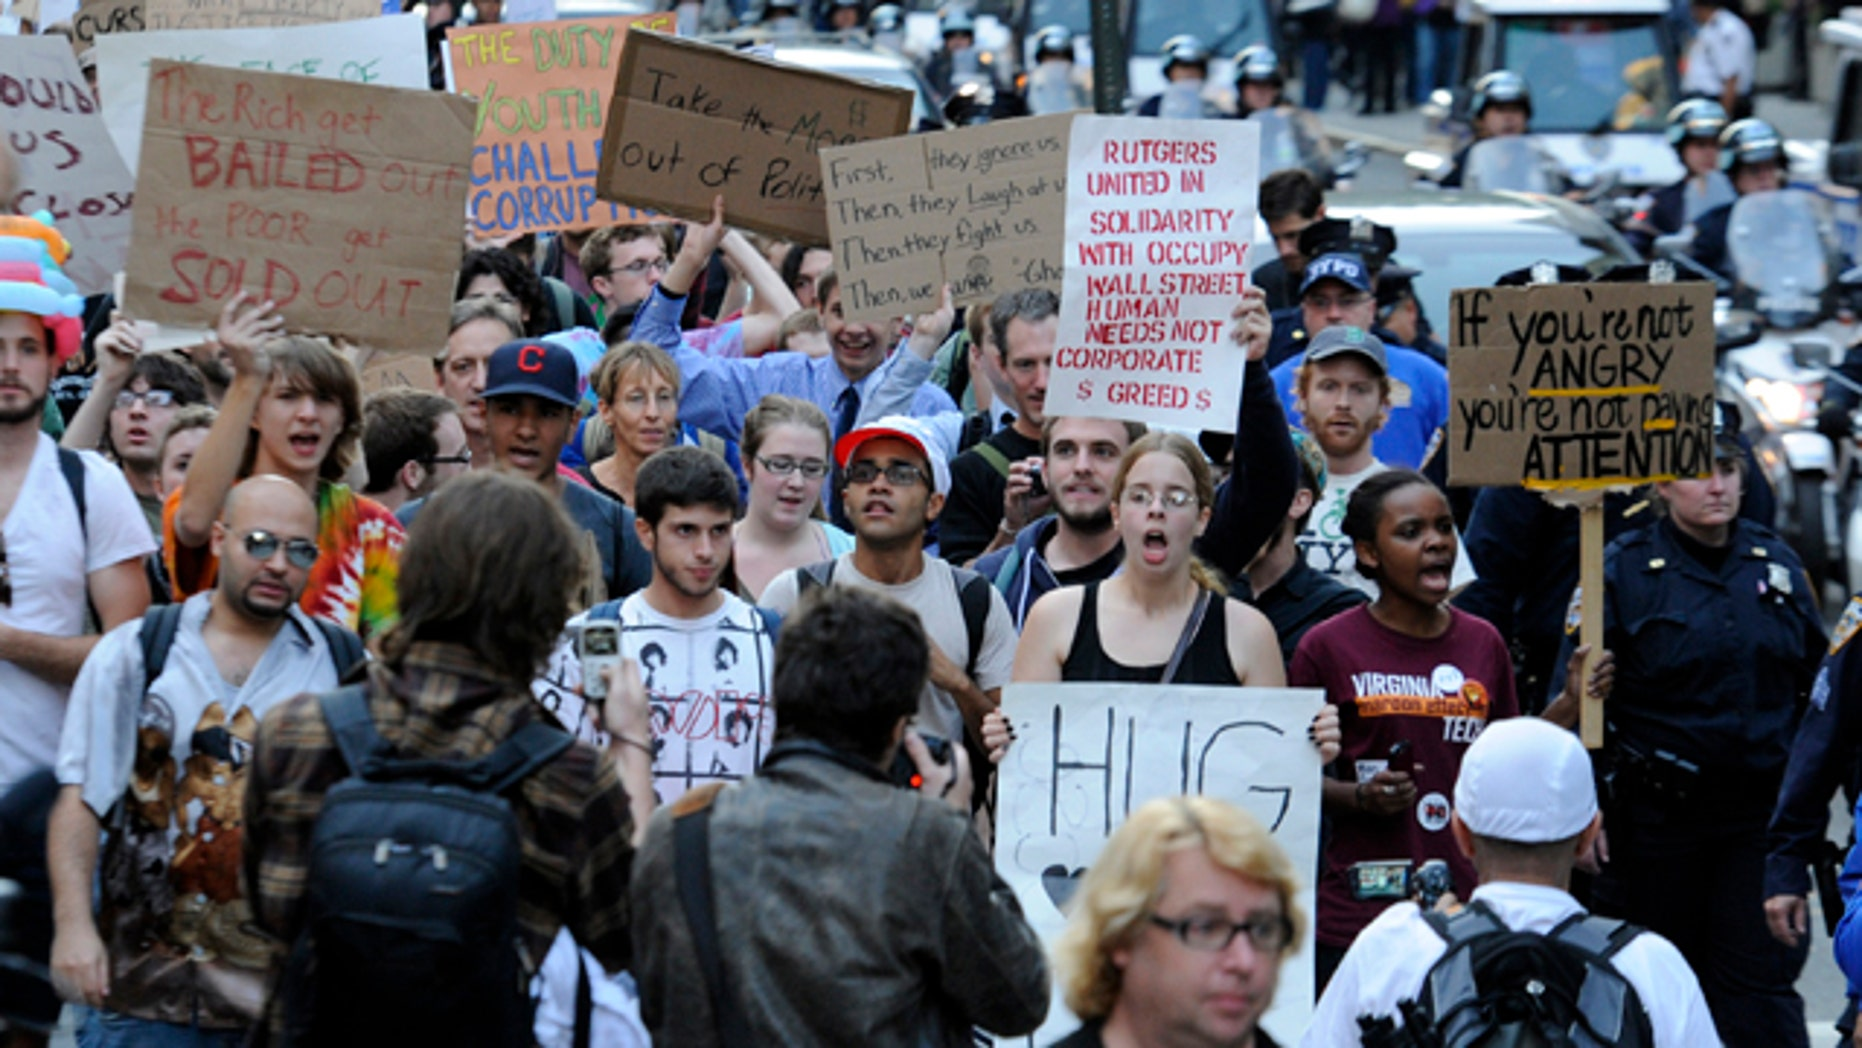 Oct. 8: Occupy Wall Street demonstrators walk down Broadway from Washington Square Park to Zuccotti Park in New York.